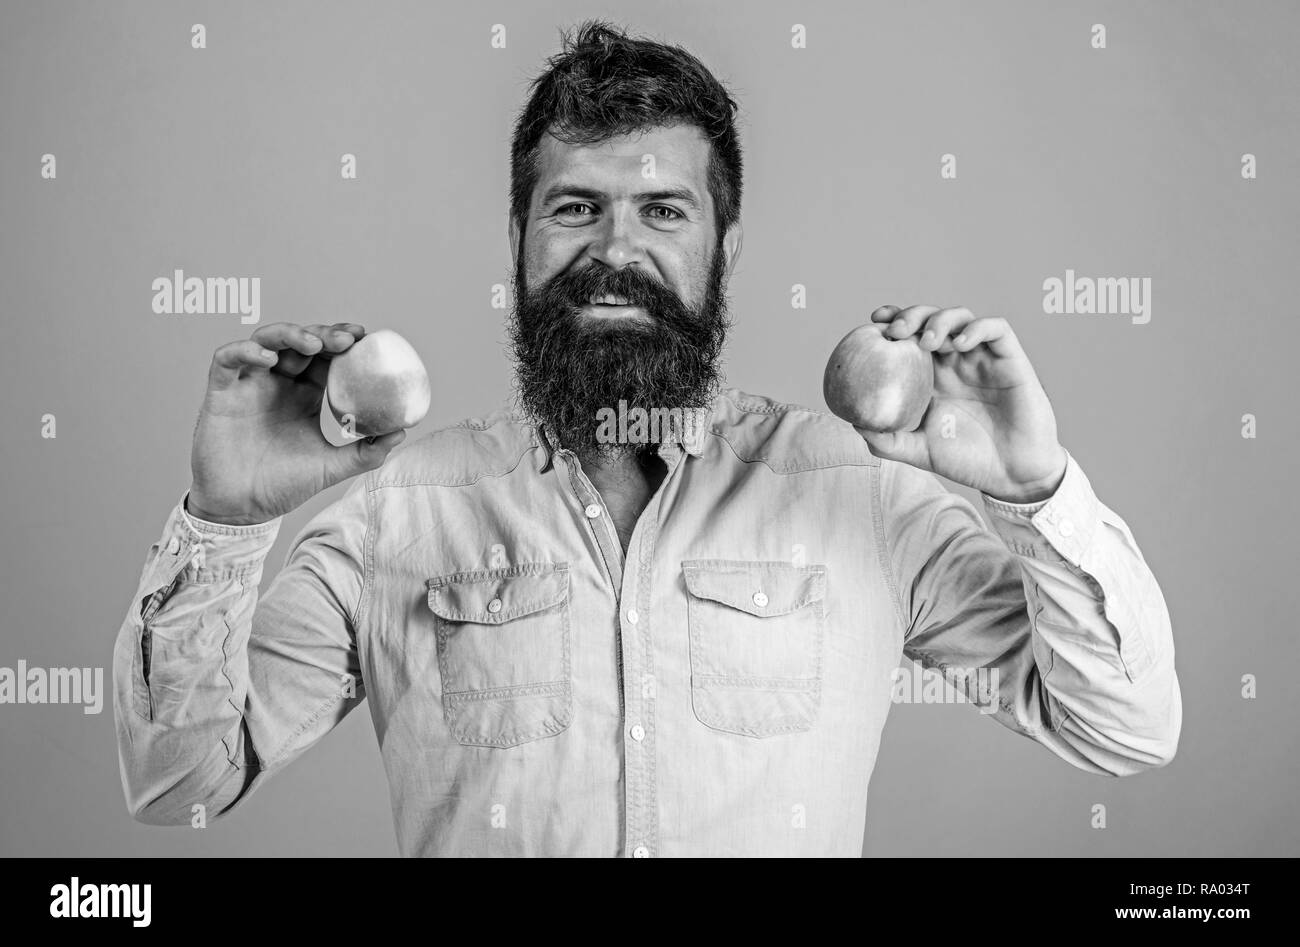 Nutritional choice. Man with beard hipster hold apple fruit in hand. Nutrition facts and health benefits. Apples popular type fruit in world. Apples antioxidant compounds responsible health benefits. - Stock Image